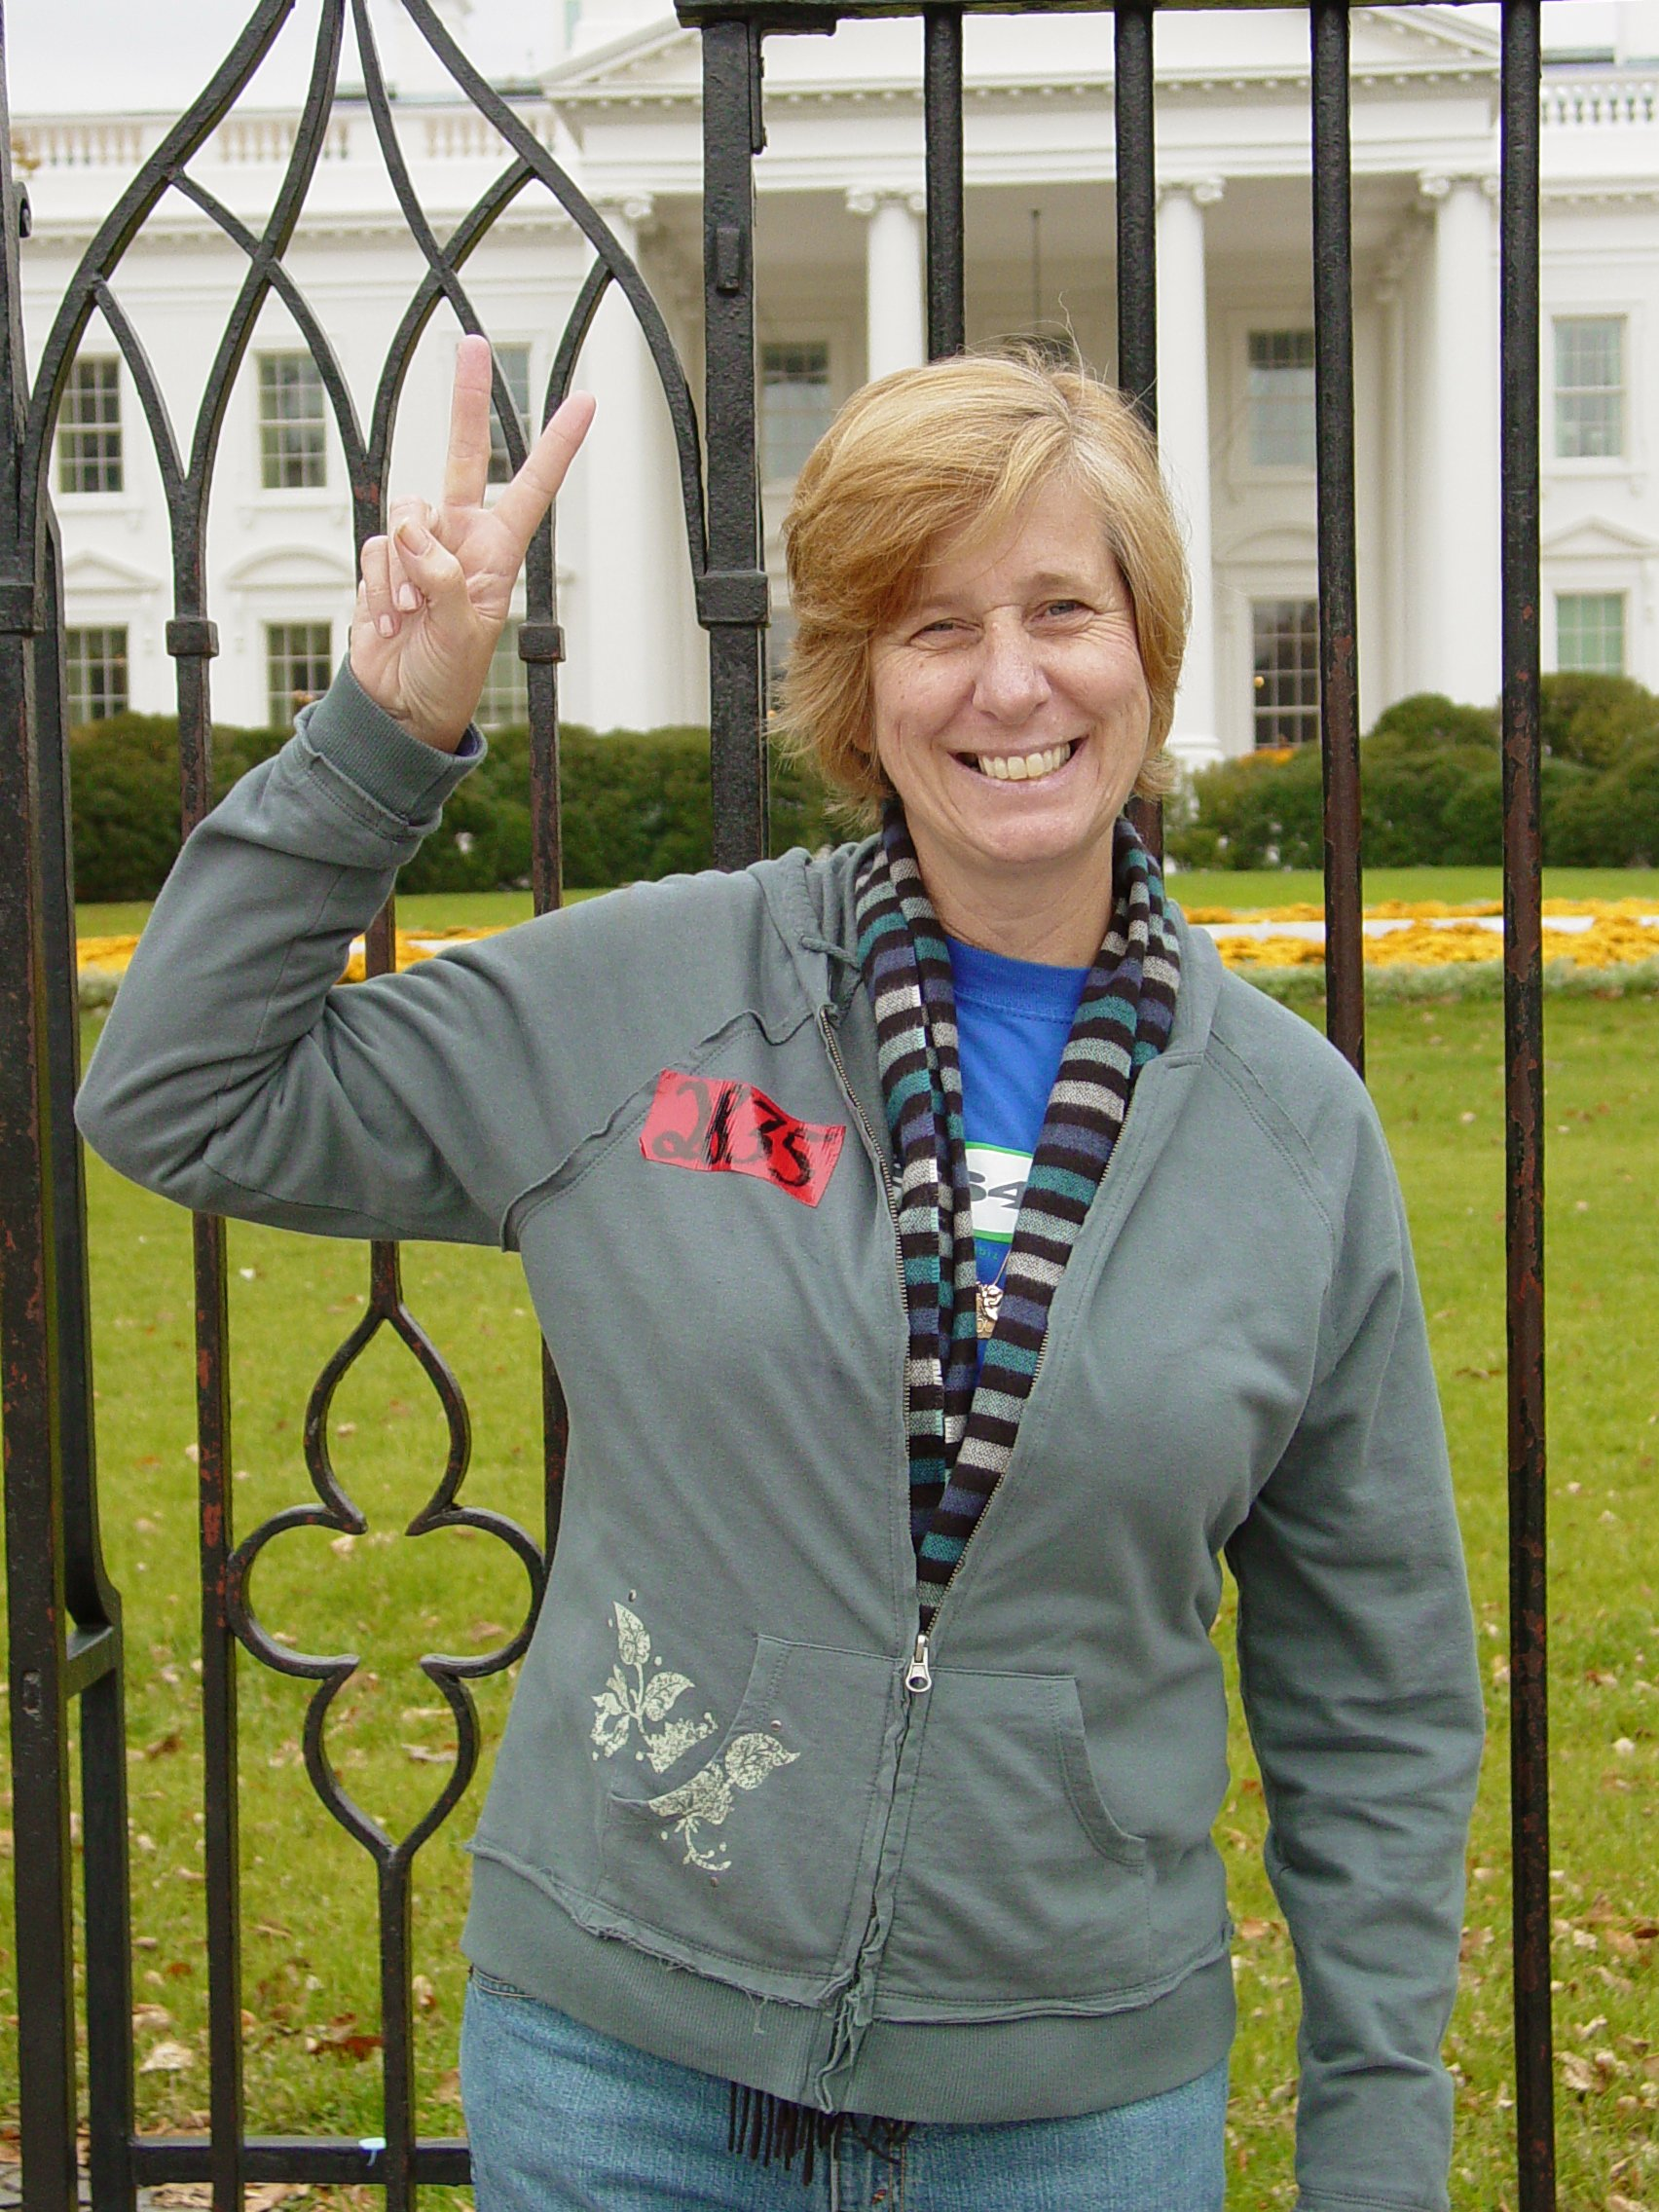 Cindy_Sheehan_at_White_House.jpg